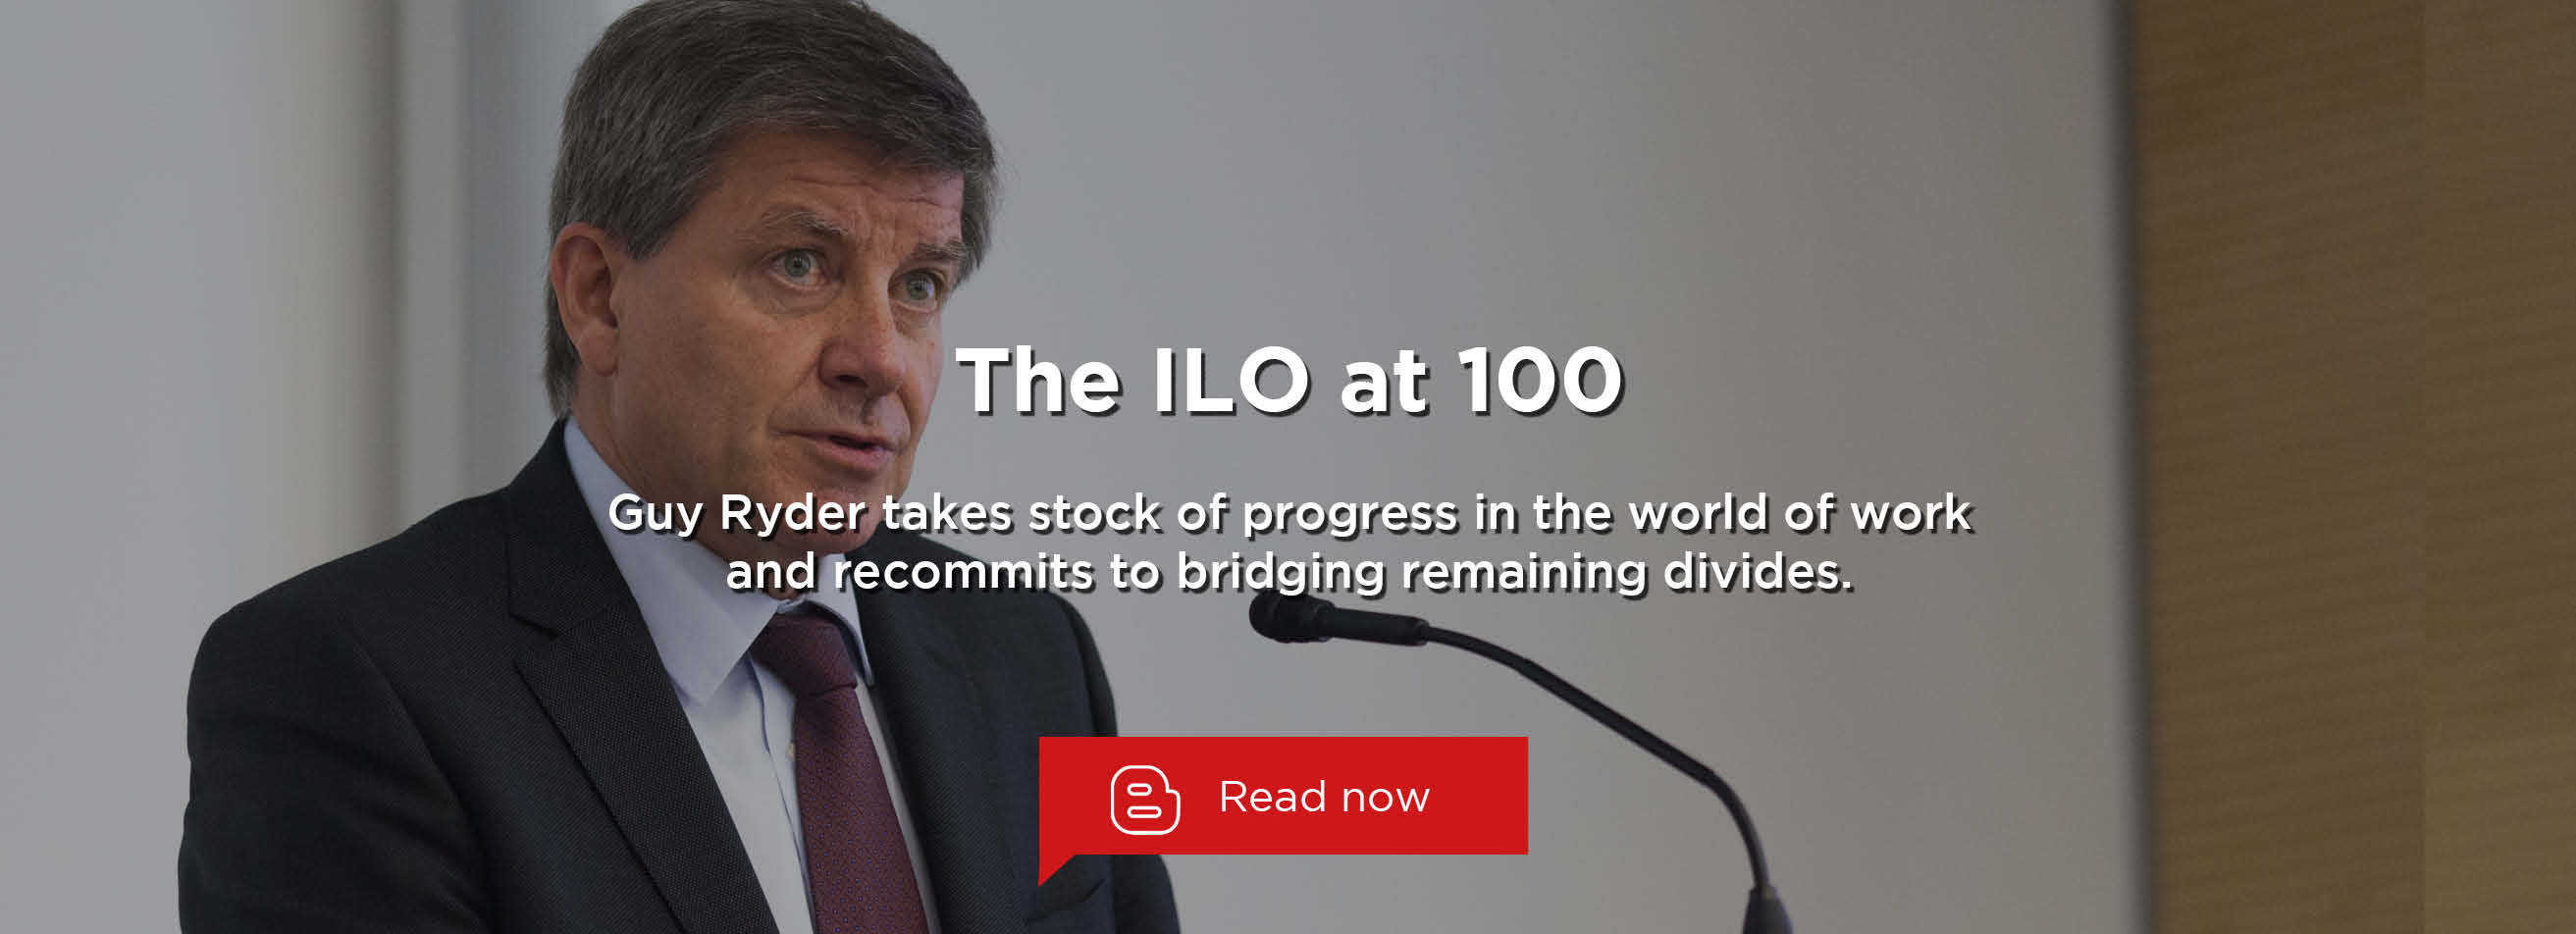 The ILO at 100: Looking Back, Moving Ahead